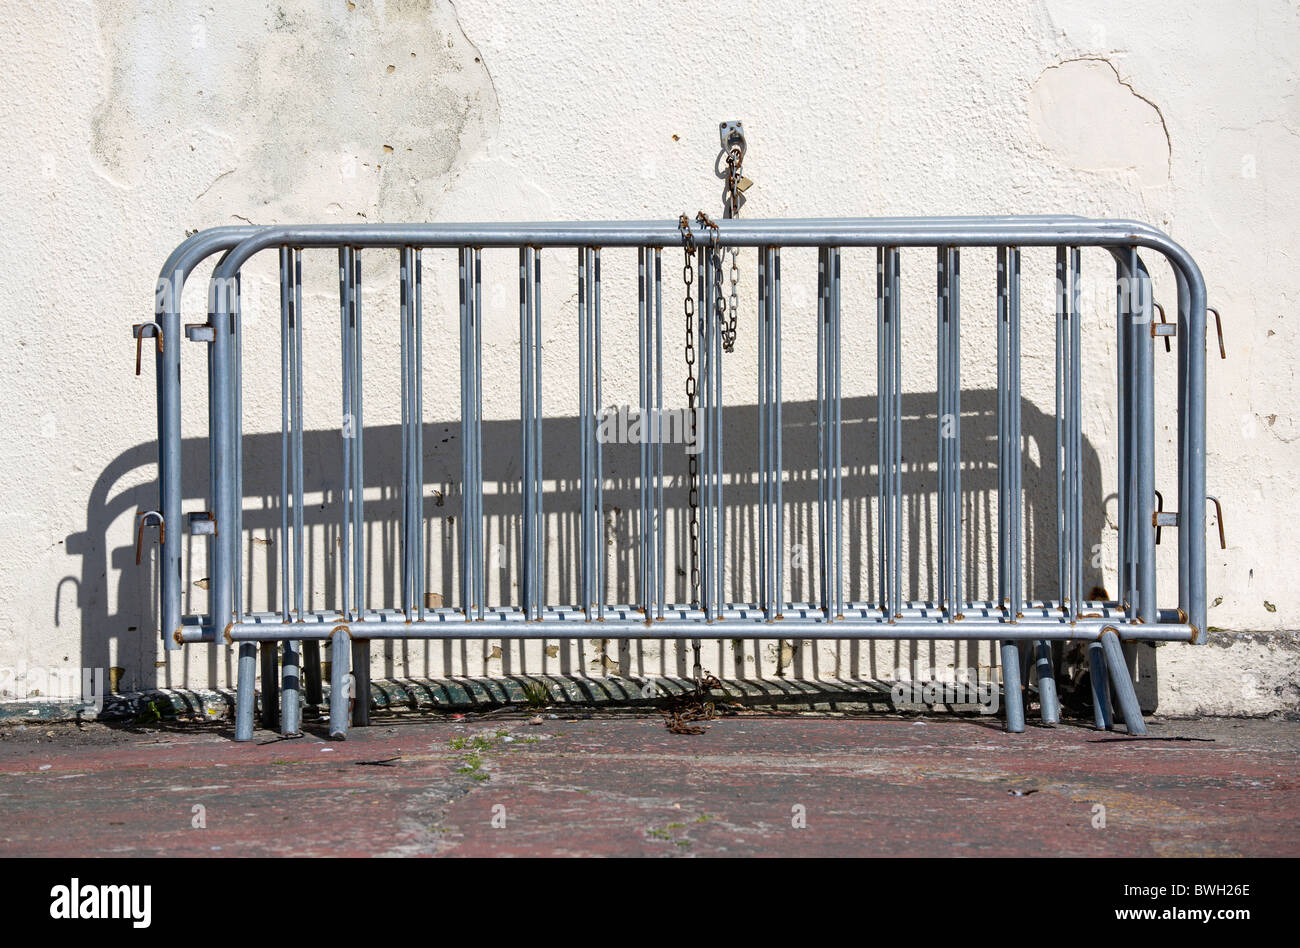 England, West Sussex, Bognor Regis, Galvanized crowd control barriers chained to a wall. - Stock Image